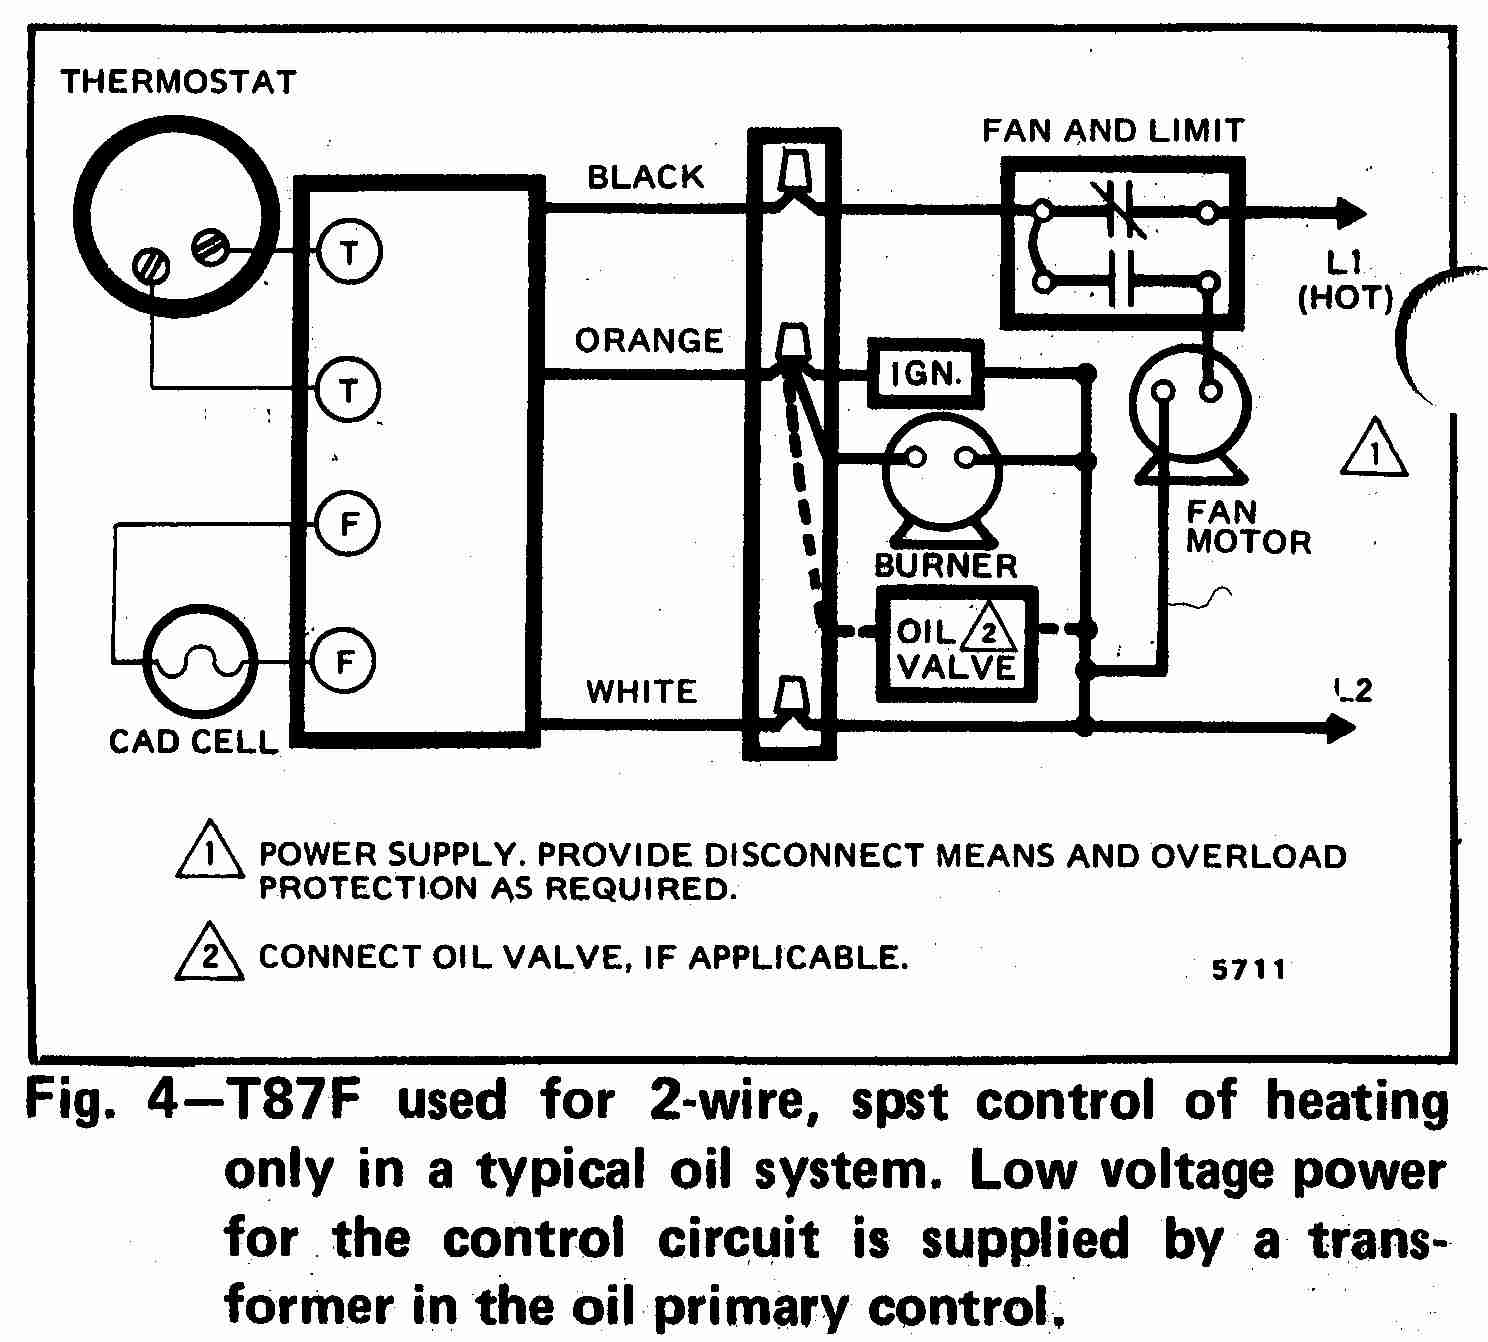 TT_T87F_0002_2W_DJF hvac wiring diagram center pivot irrigation wiring diagrams rheem furnace wiring diagram at crackthecode.co